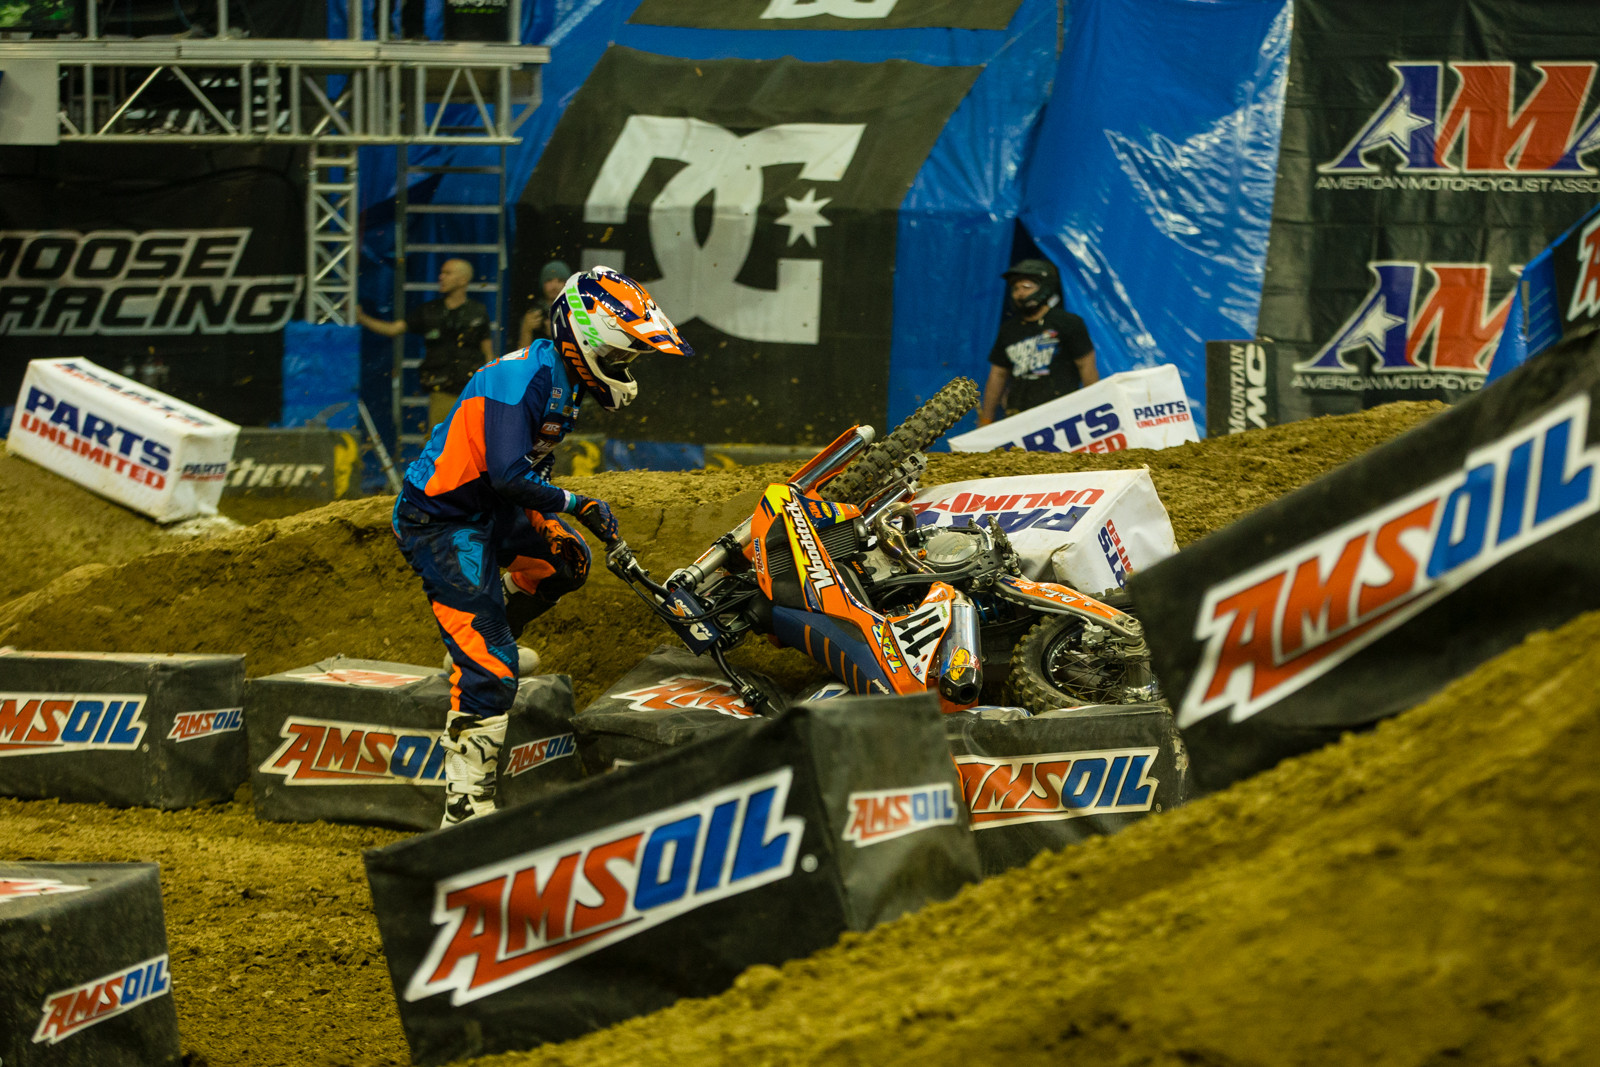 Margin for Error - Photo Gallery: Ontario Arenacross - Saturday Night - Motocross Pictures - Vital MX